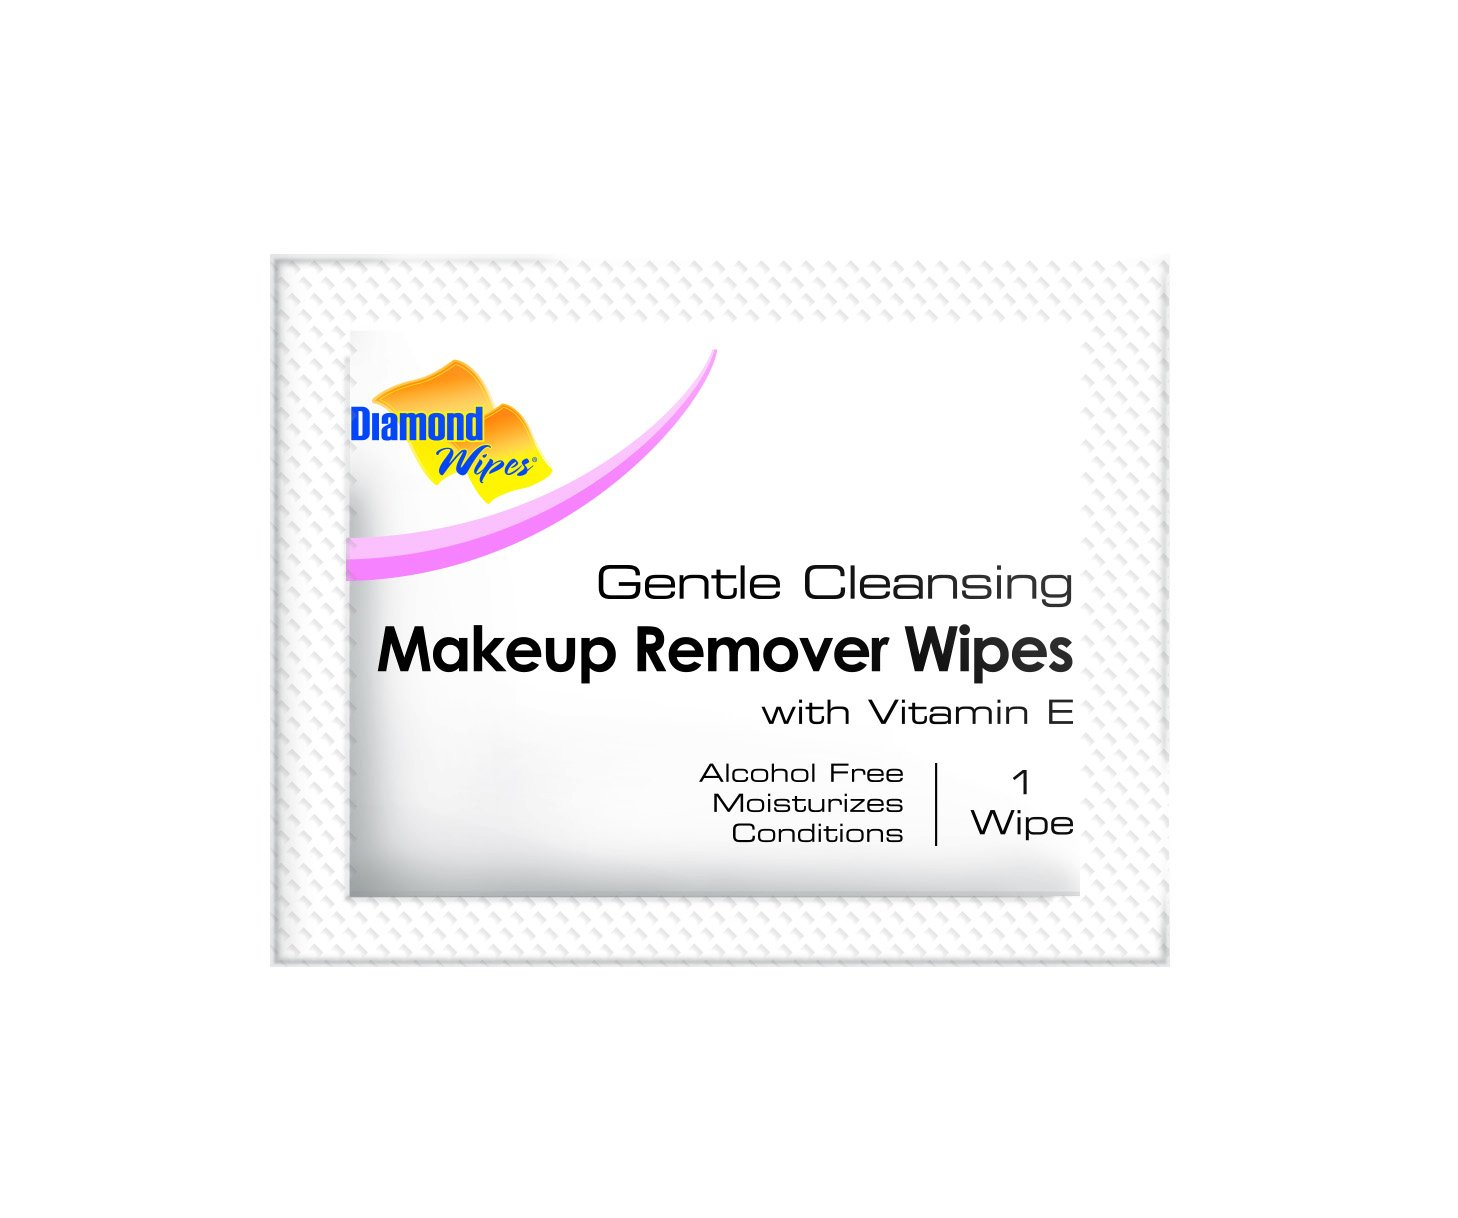 Gentle Makeup Remover Cleansing Face Wipes - Facial Towelettes with Vitamin E for Waterproof Makeup - Individually Sealed Wrappers Bulk Buy Pack of 500 by Diamond Wipes